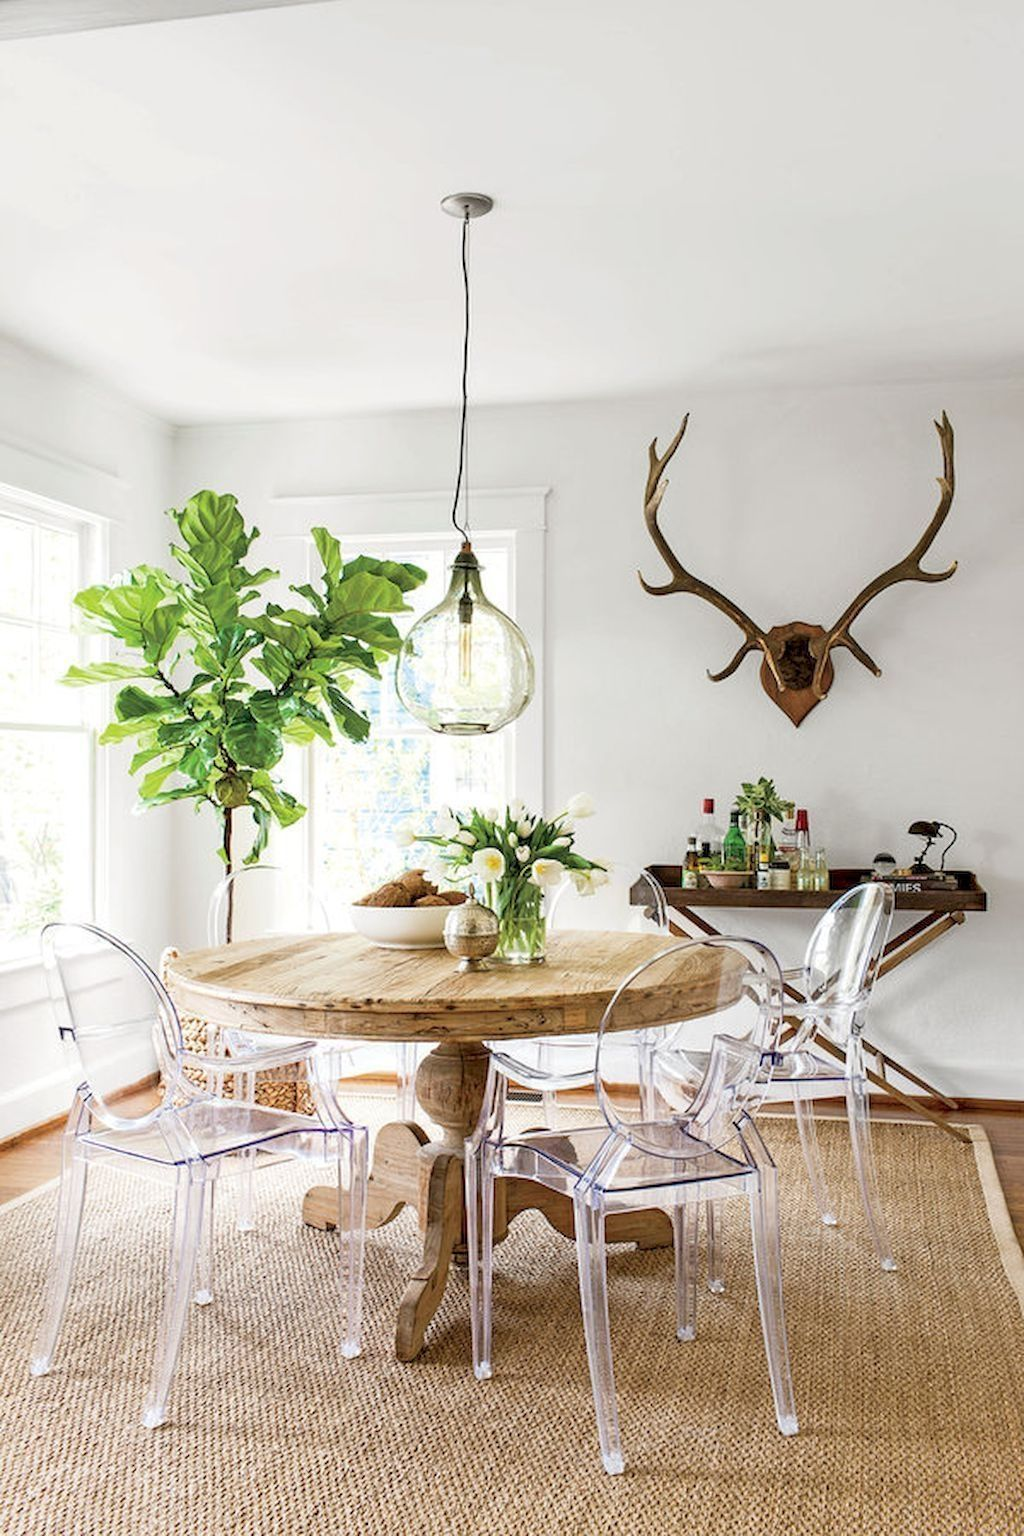 Awesome 50 Minimalist Small Dining Room Decoration Ideas On A Budget